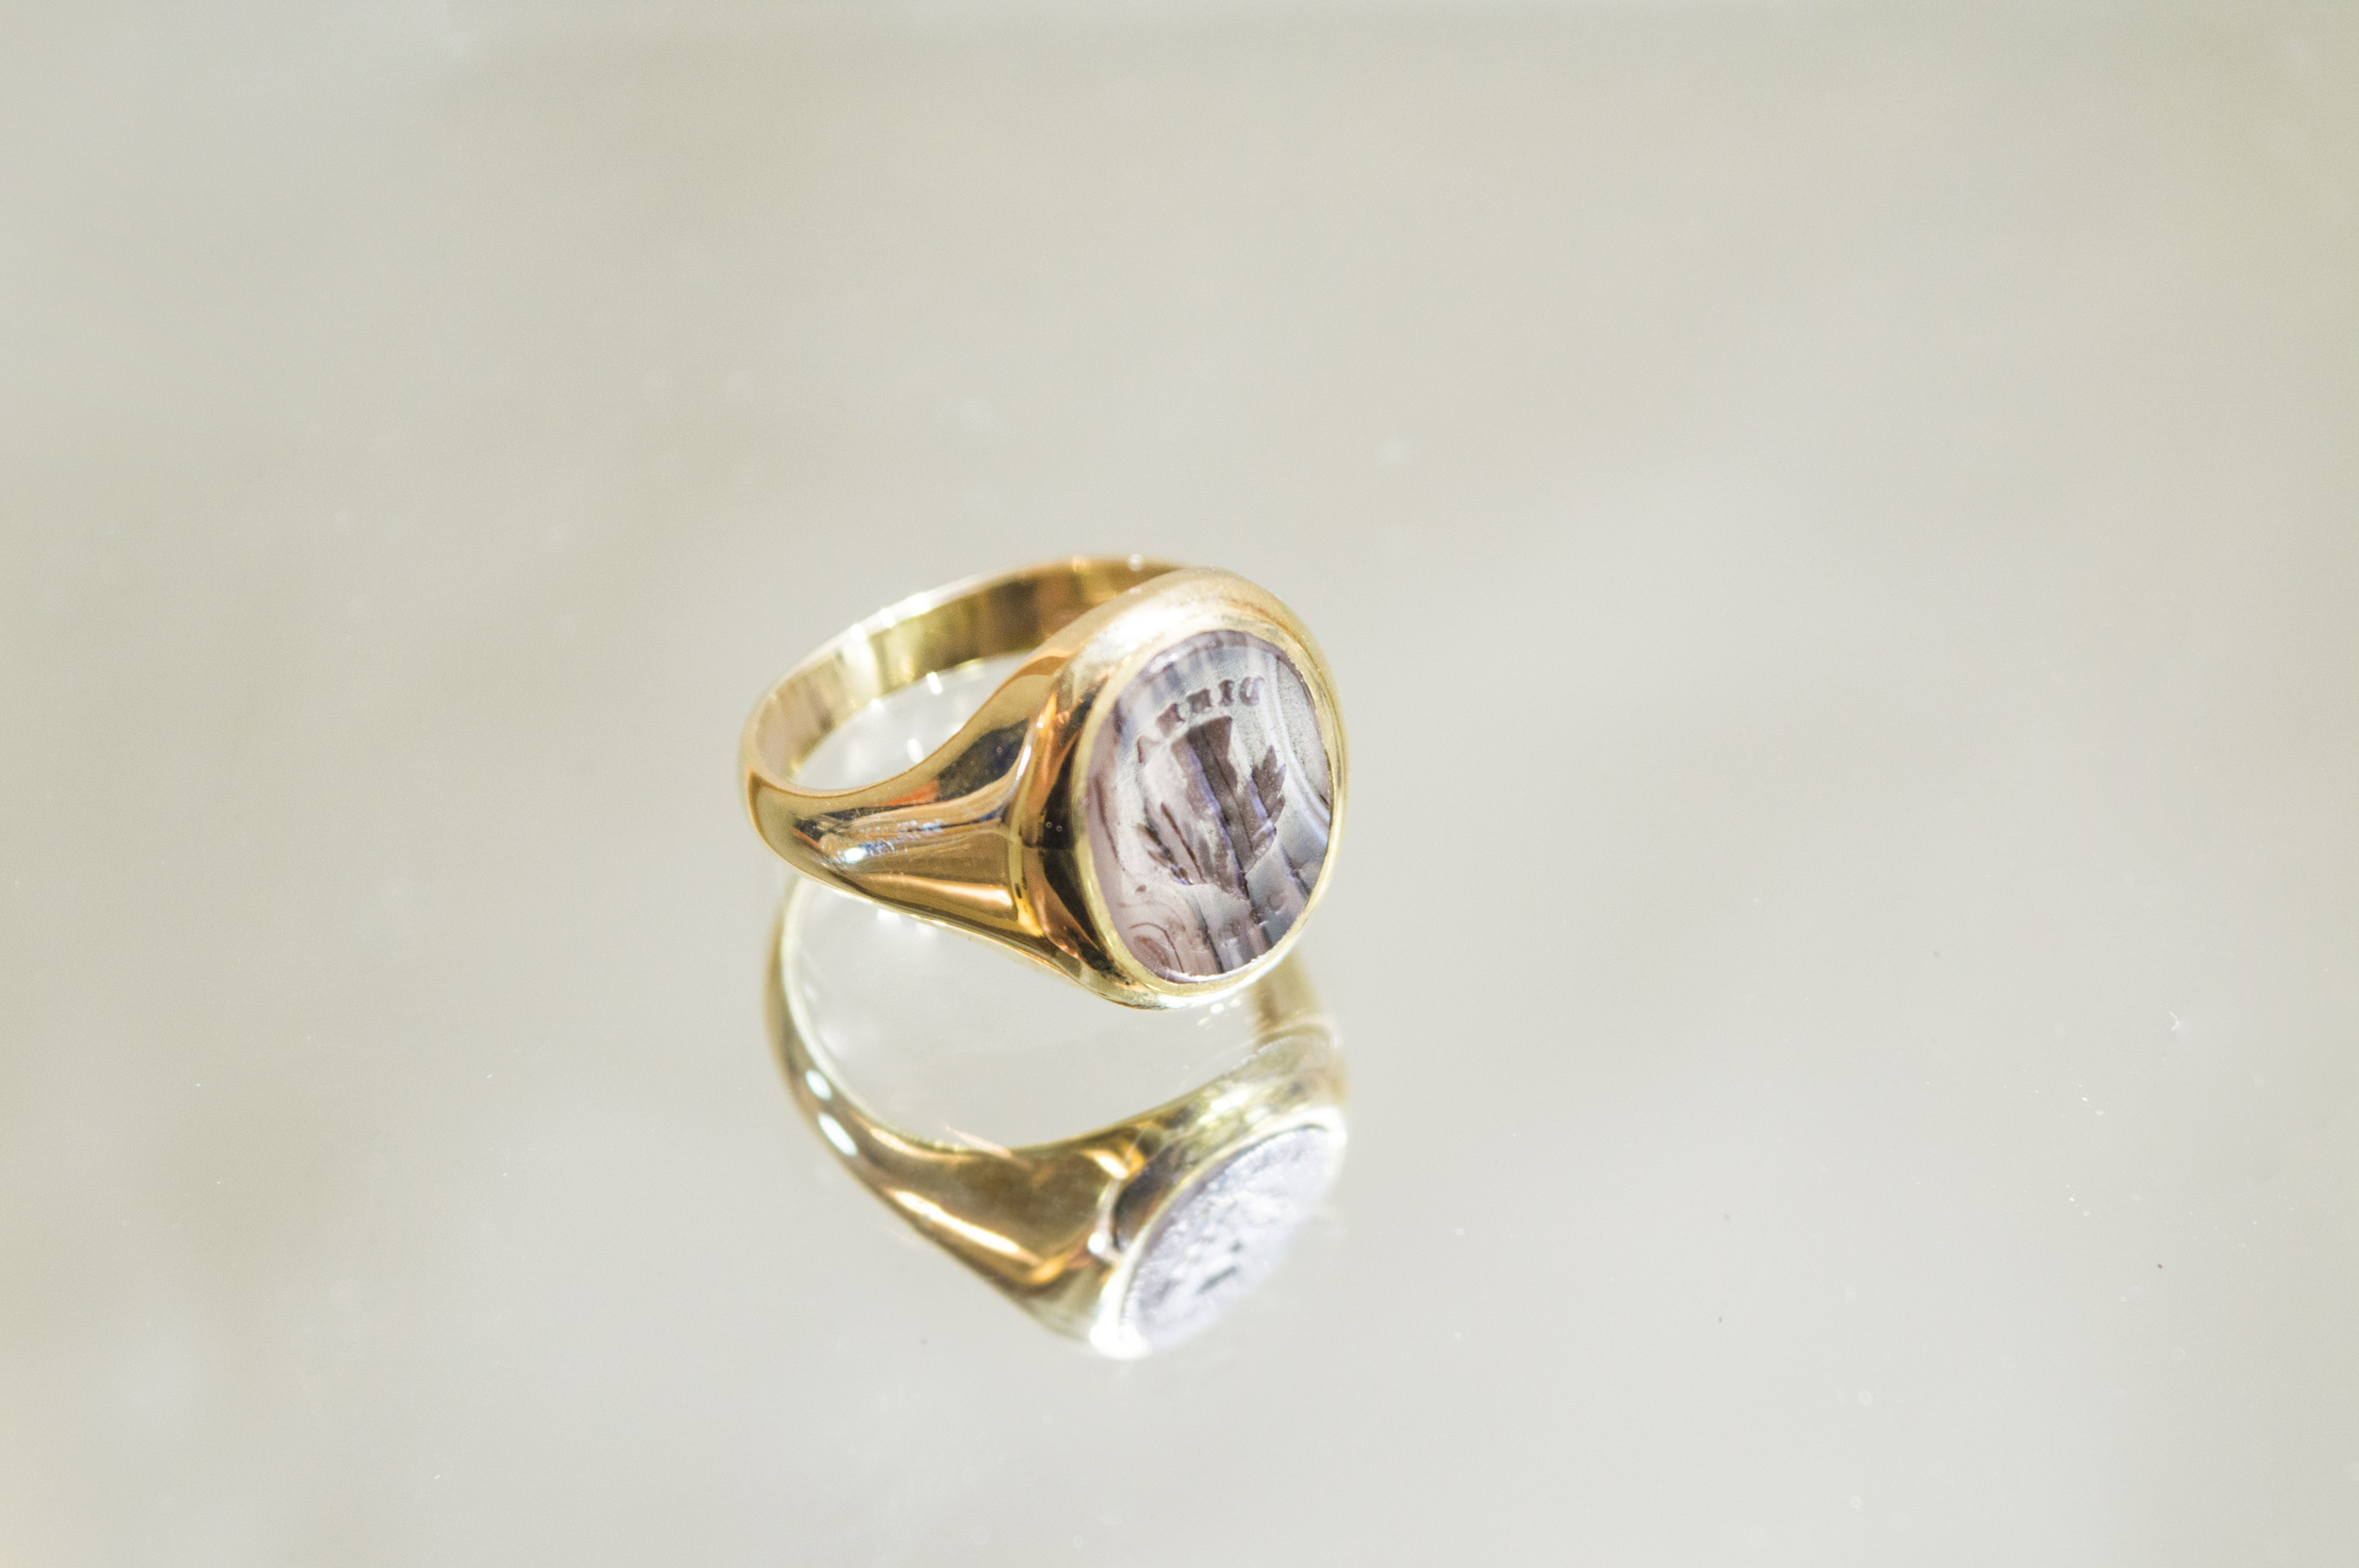 £495 - 9ct Agate Gents Signet Ring